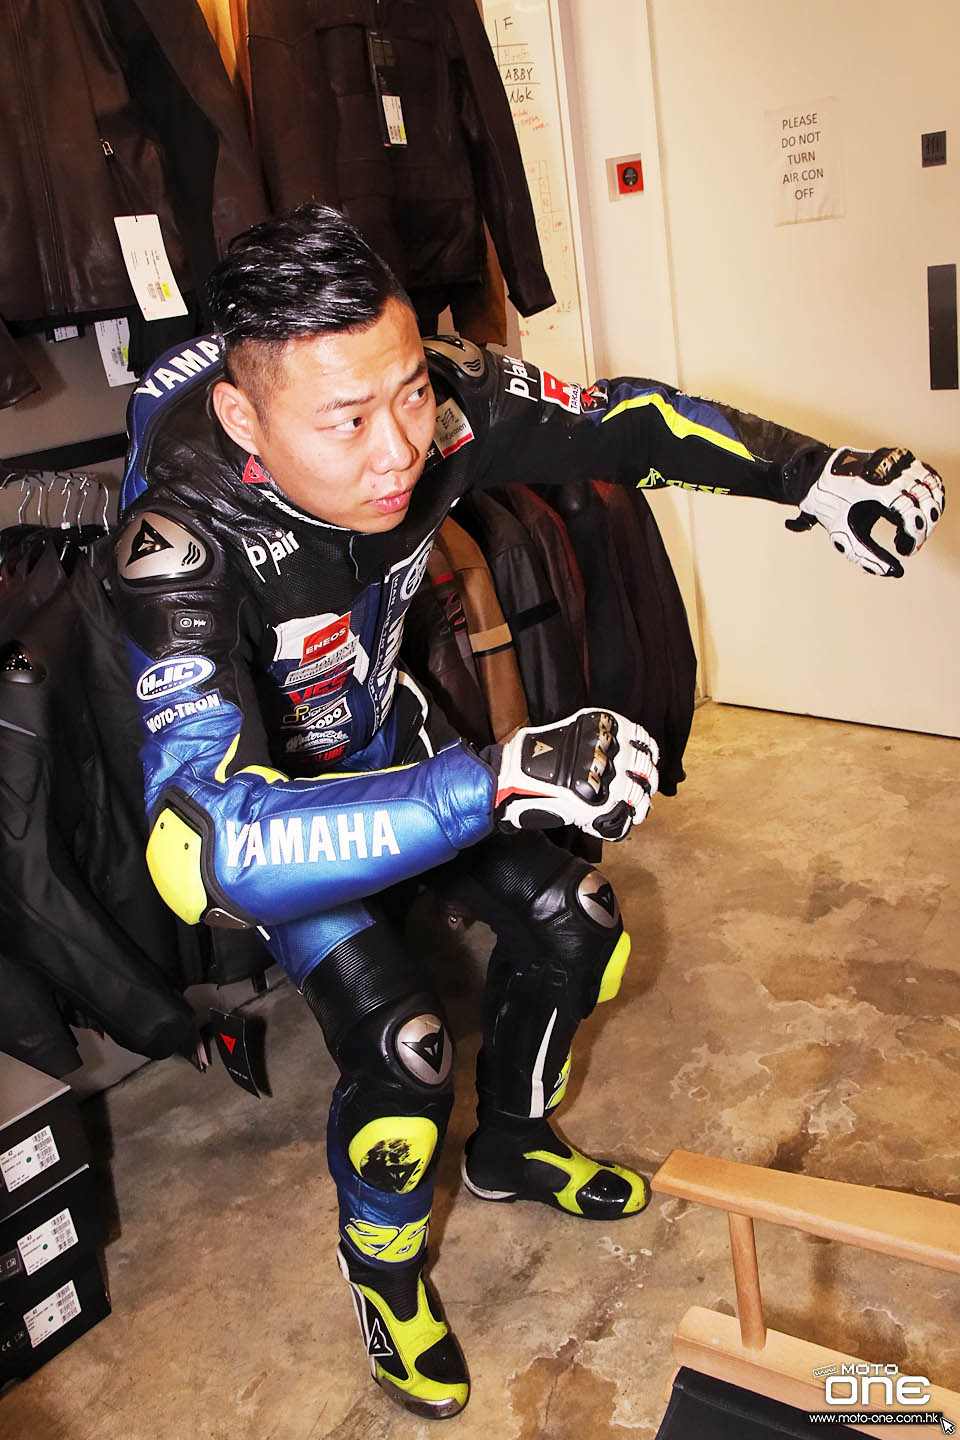 2017 DAINESE HK YAMAHA RACING TEAM RIDER